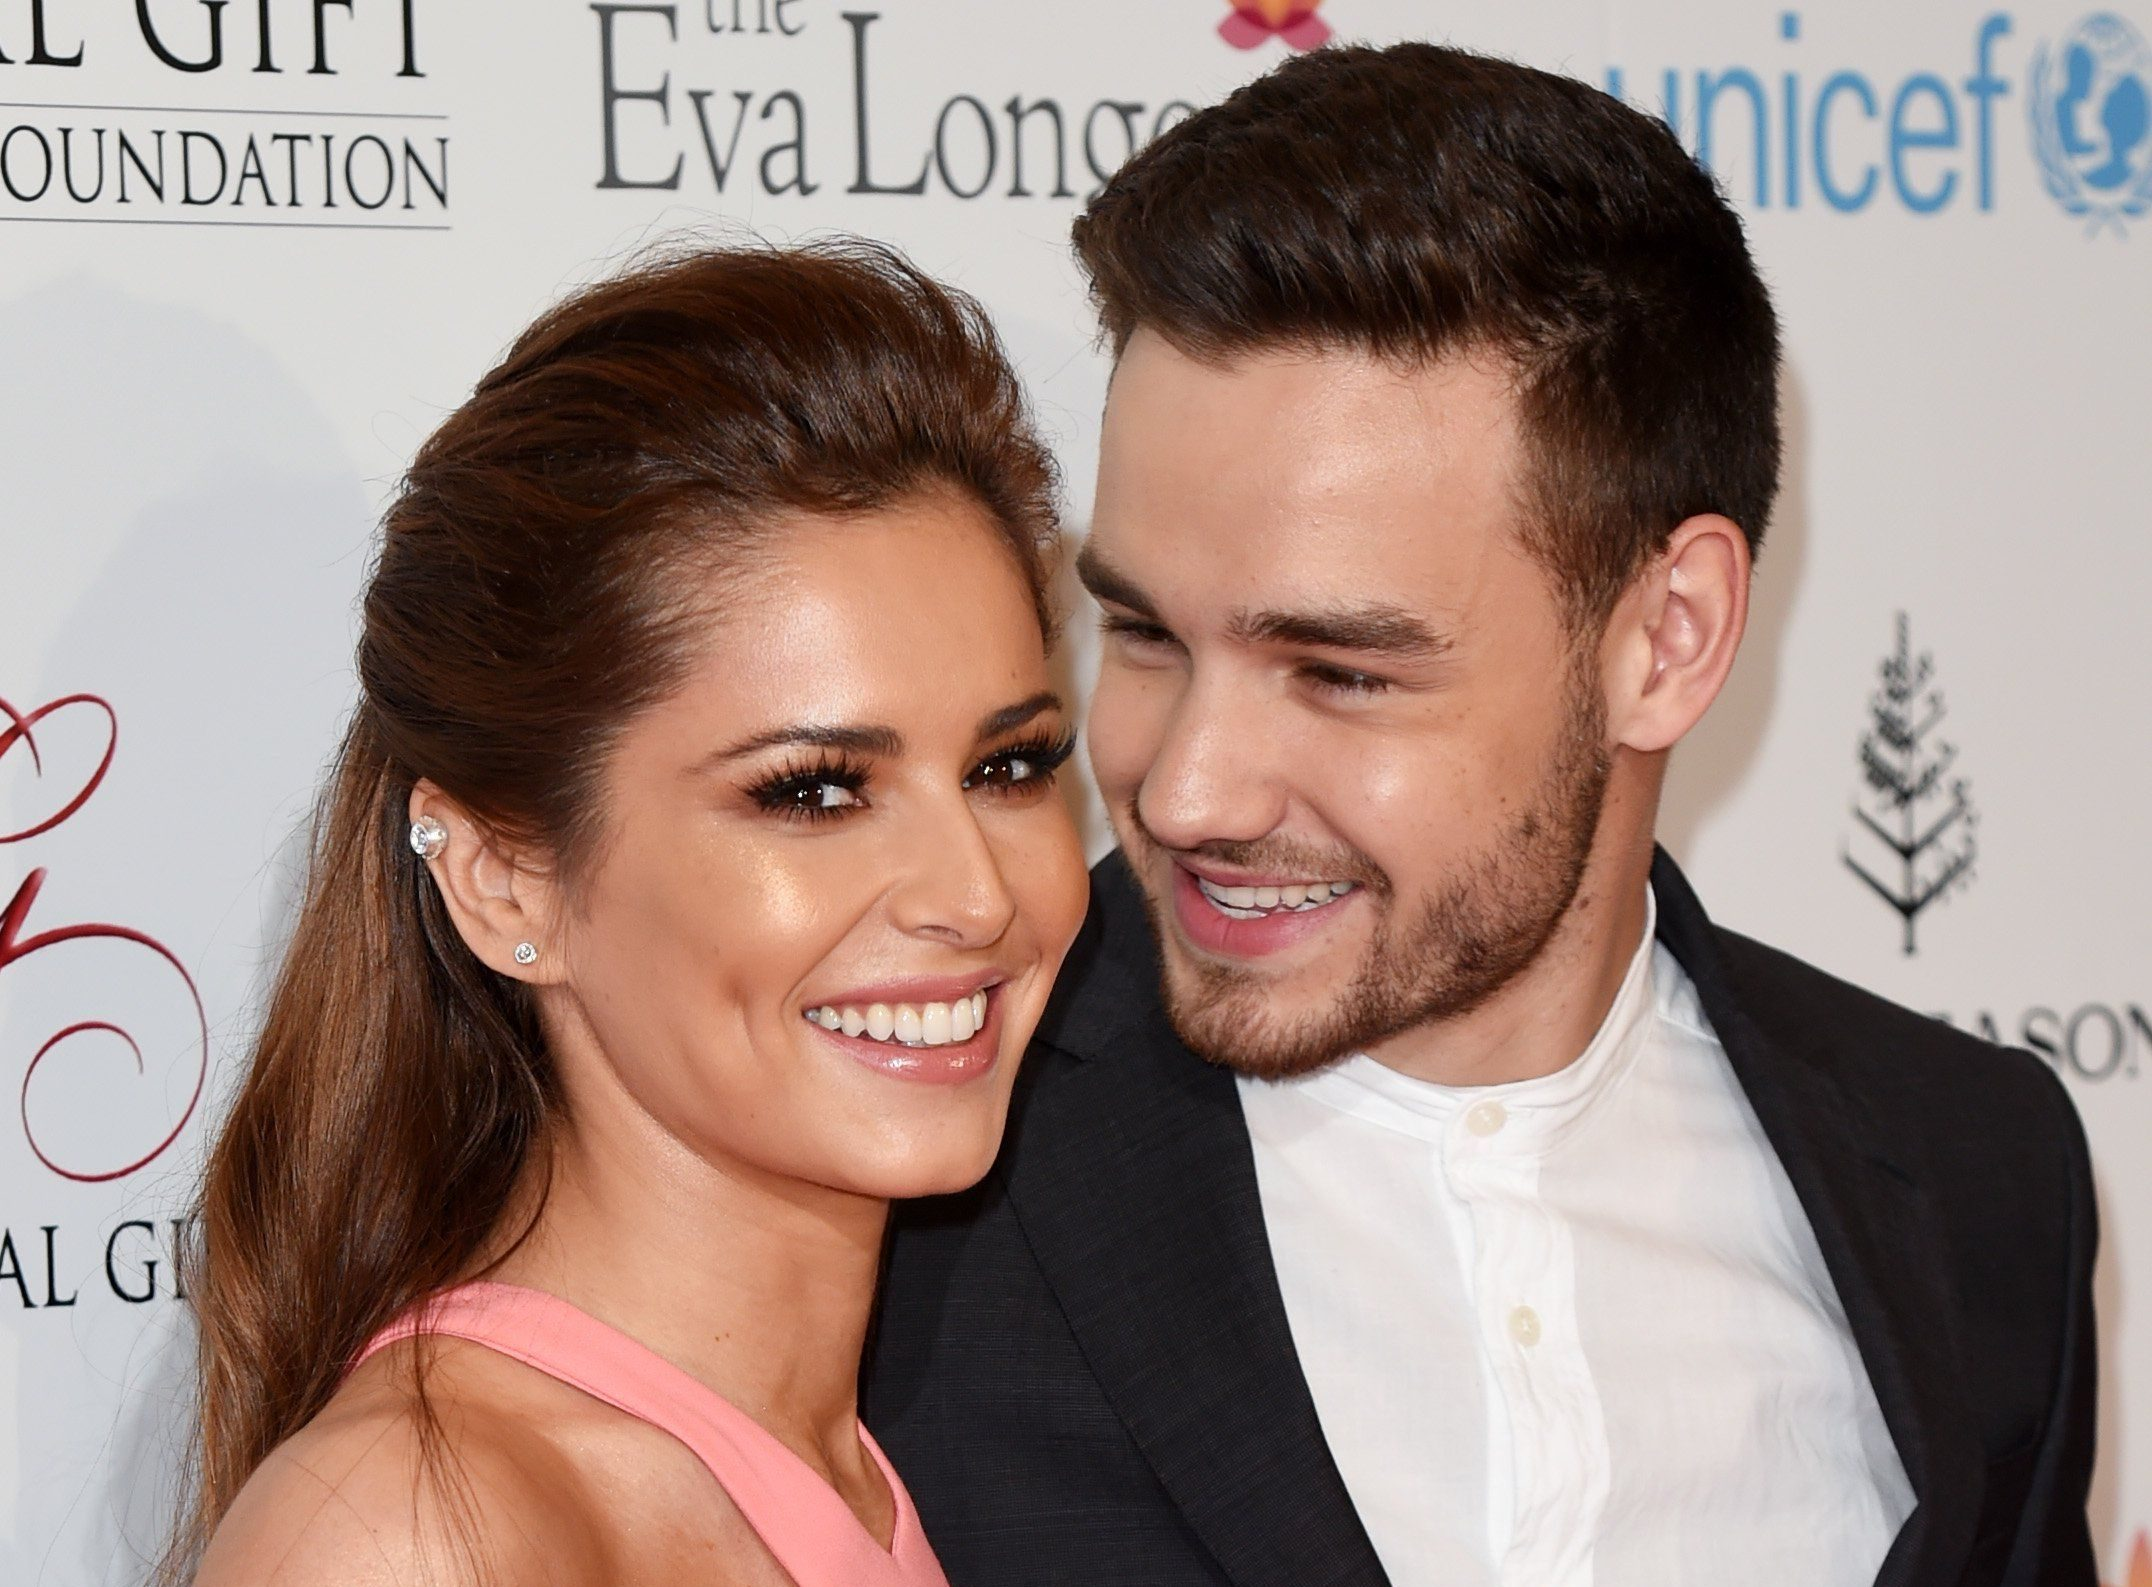 Liam Payne's marriage proposal 'snubbed' by Cheryl after birth of baby son